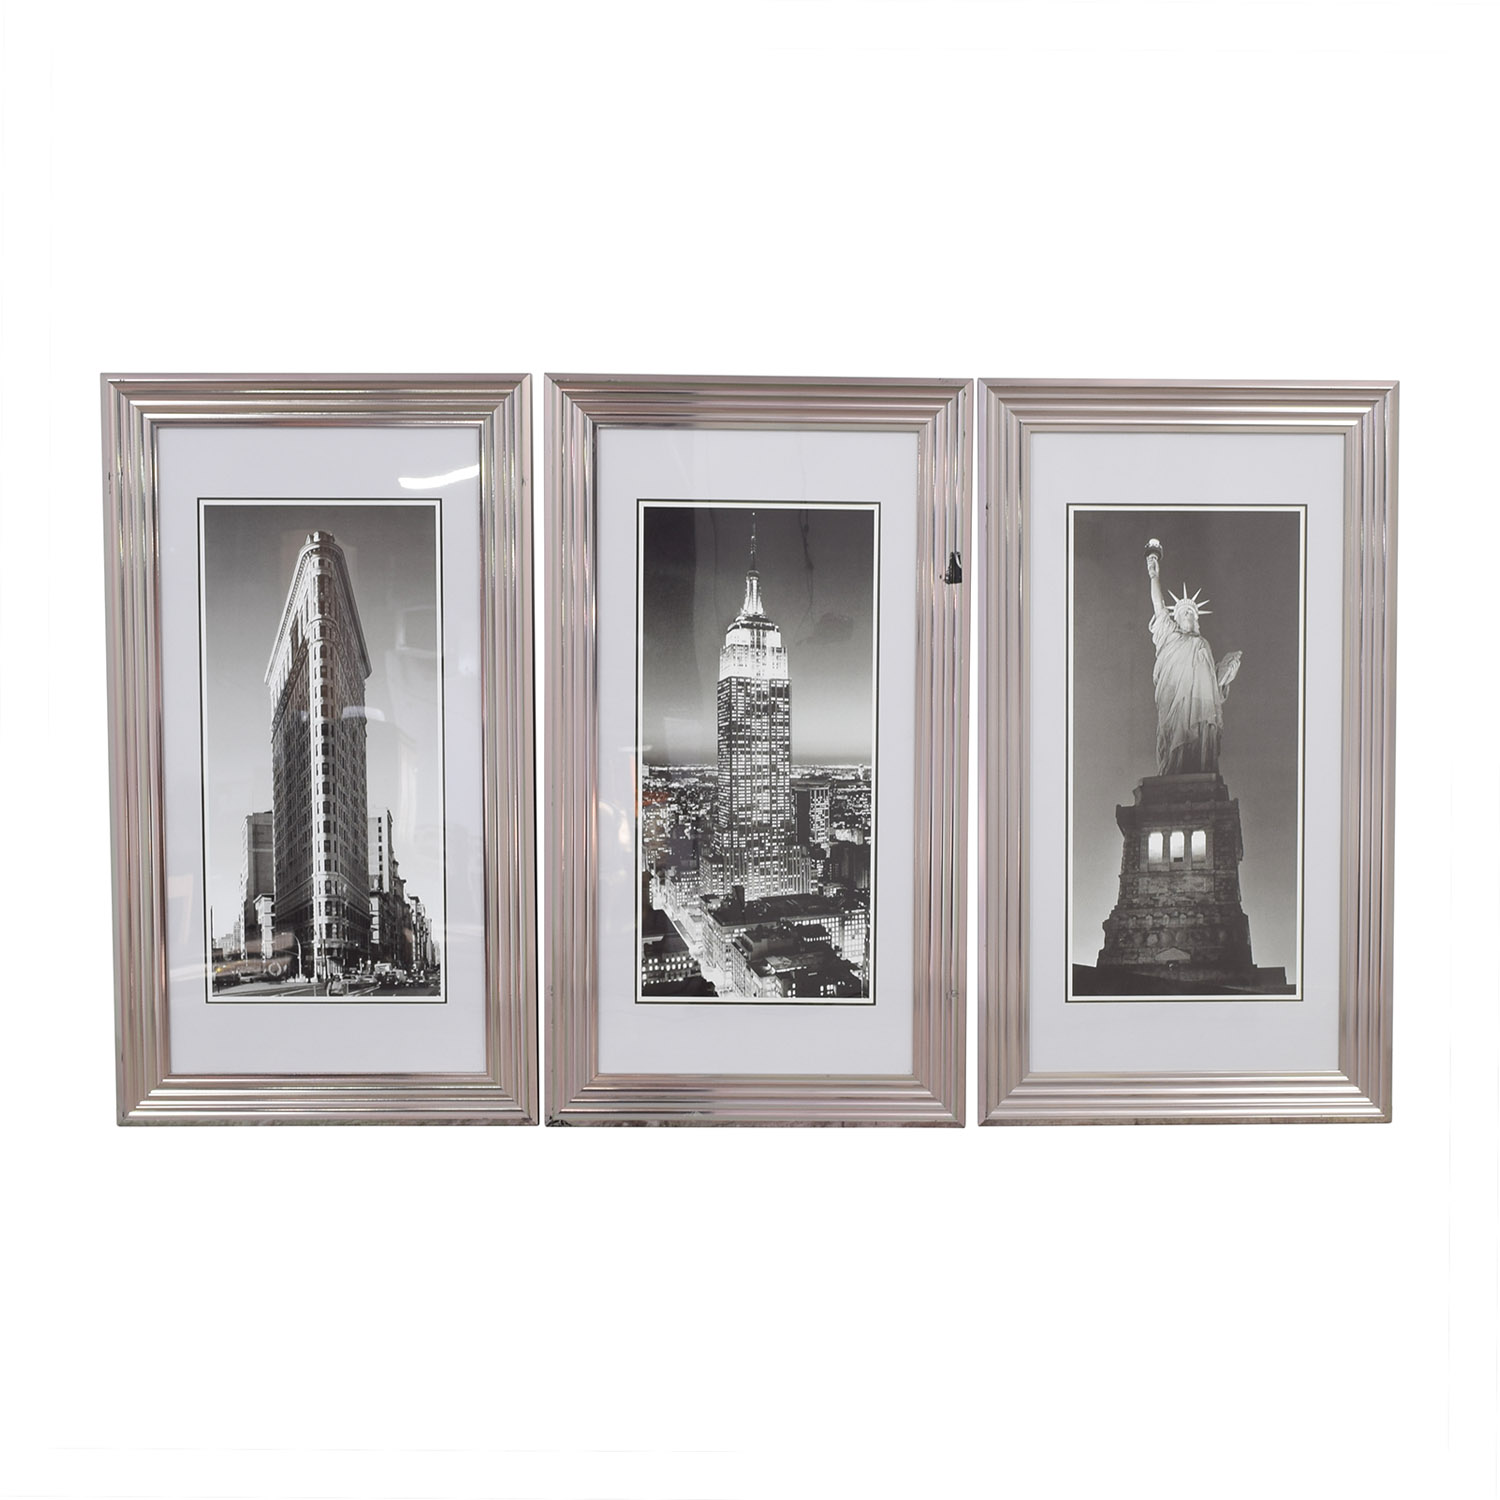 Modani Modani Framed NYC Landmark Prints nj